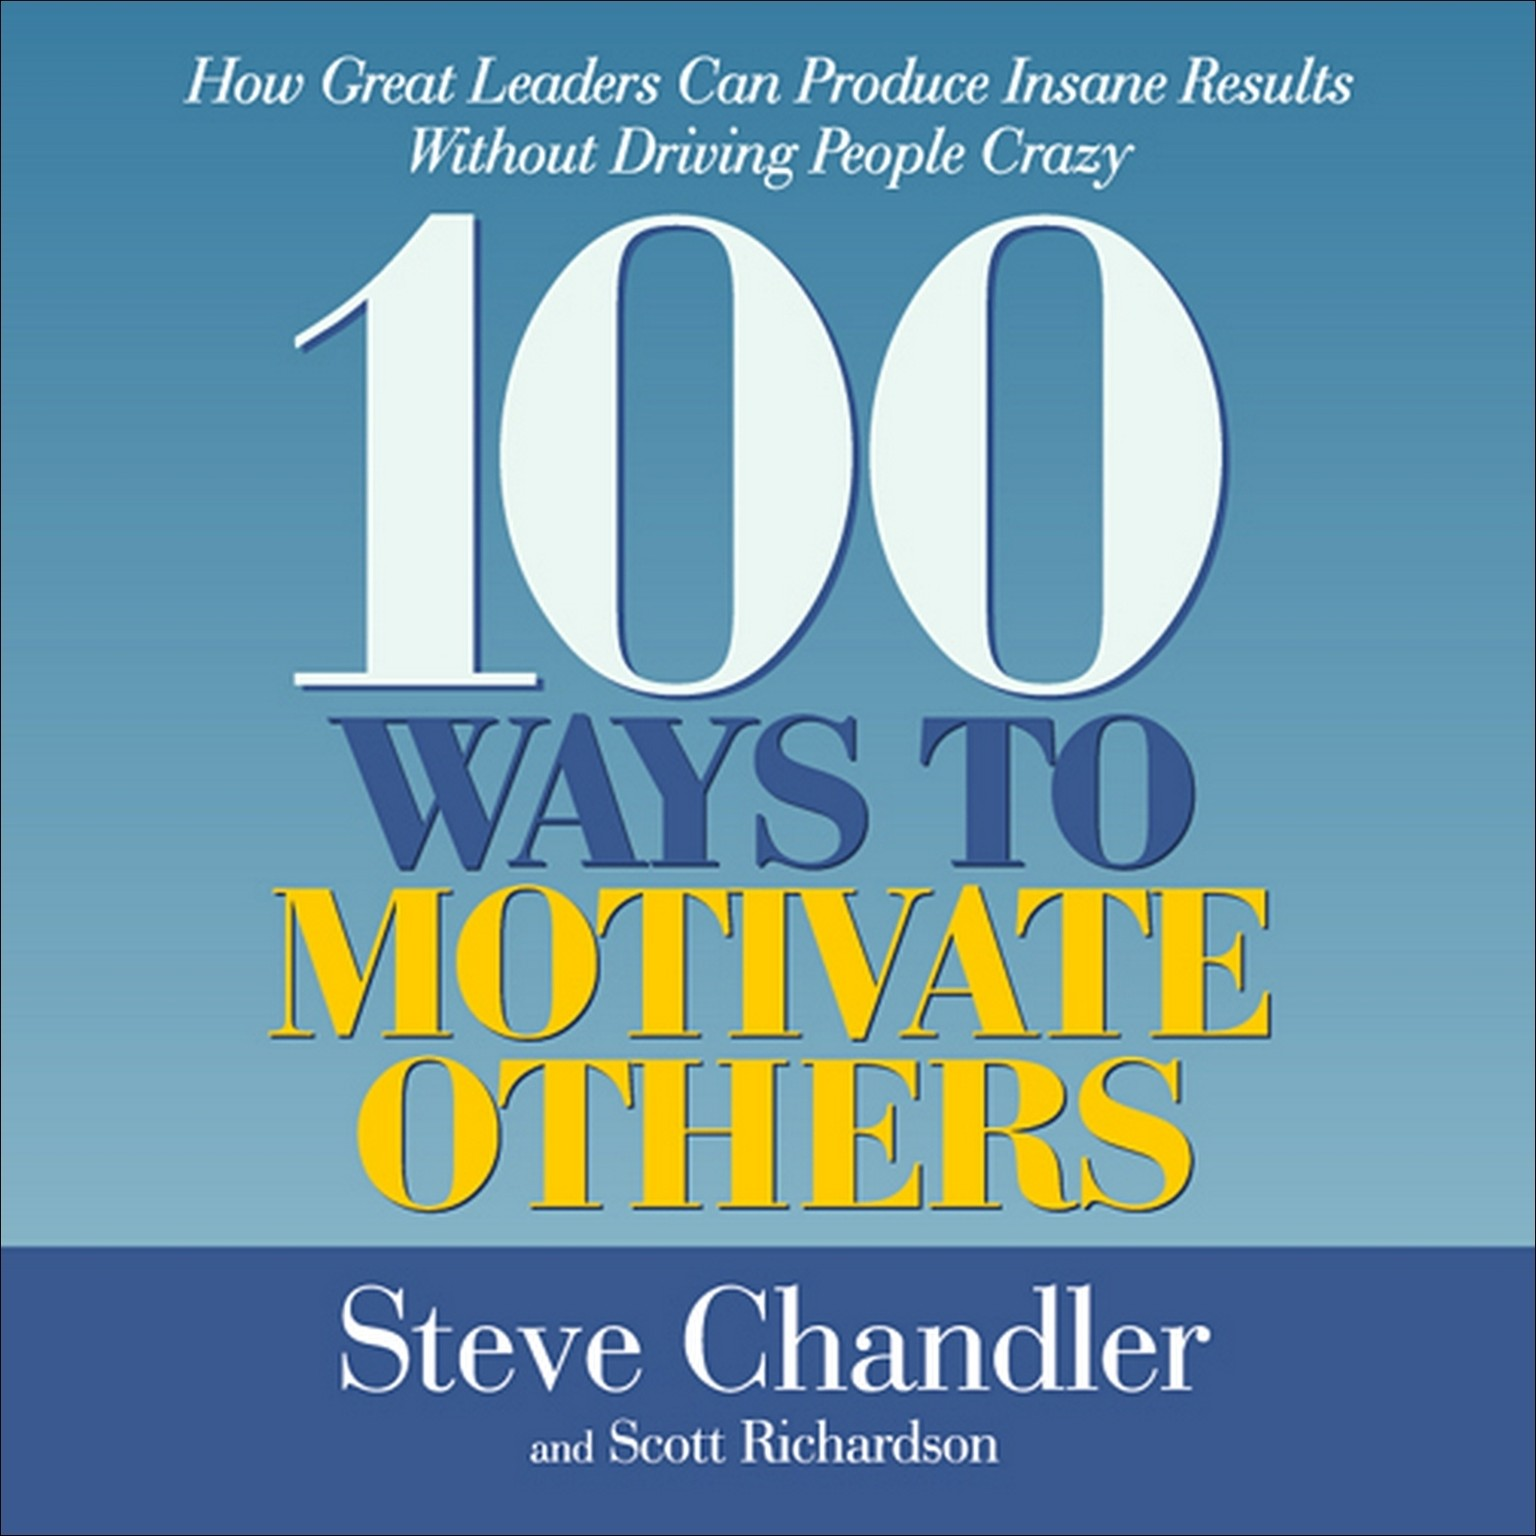 Printable 100 Ways to Motivate Others: How Great Leaders Can Produce Insane Results Without Driving People Crazy Audiobook Cover Art